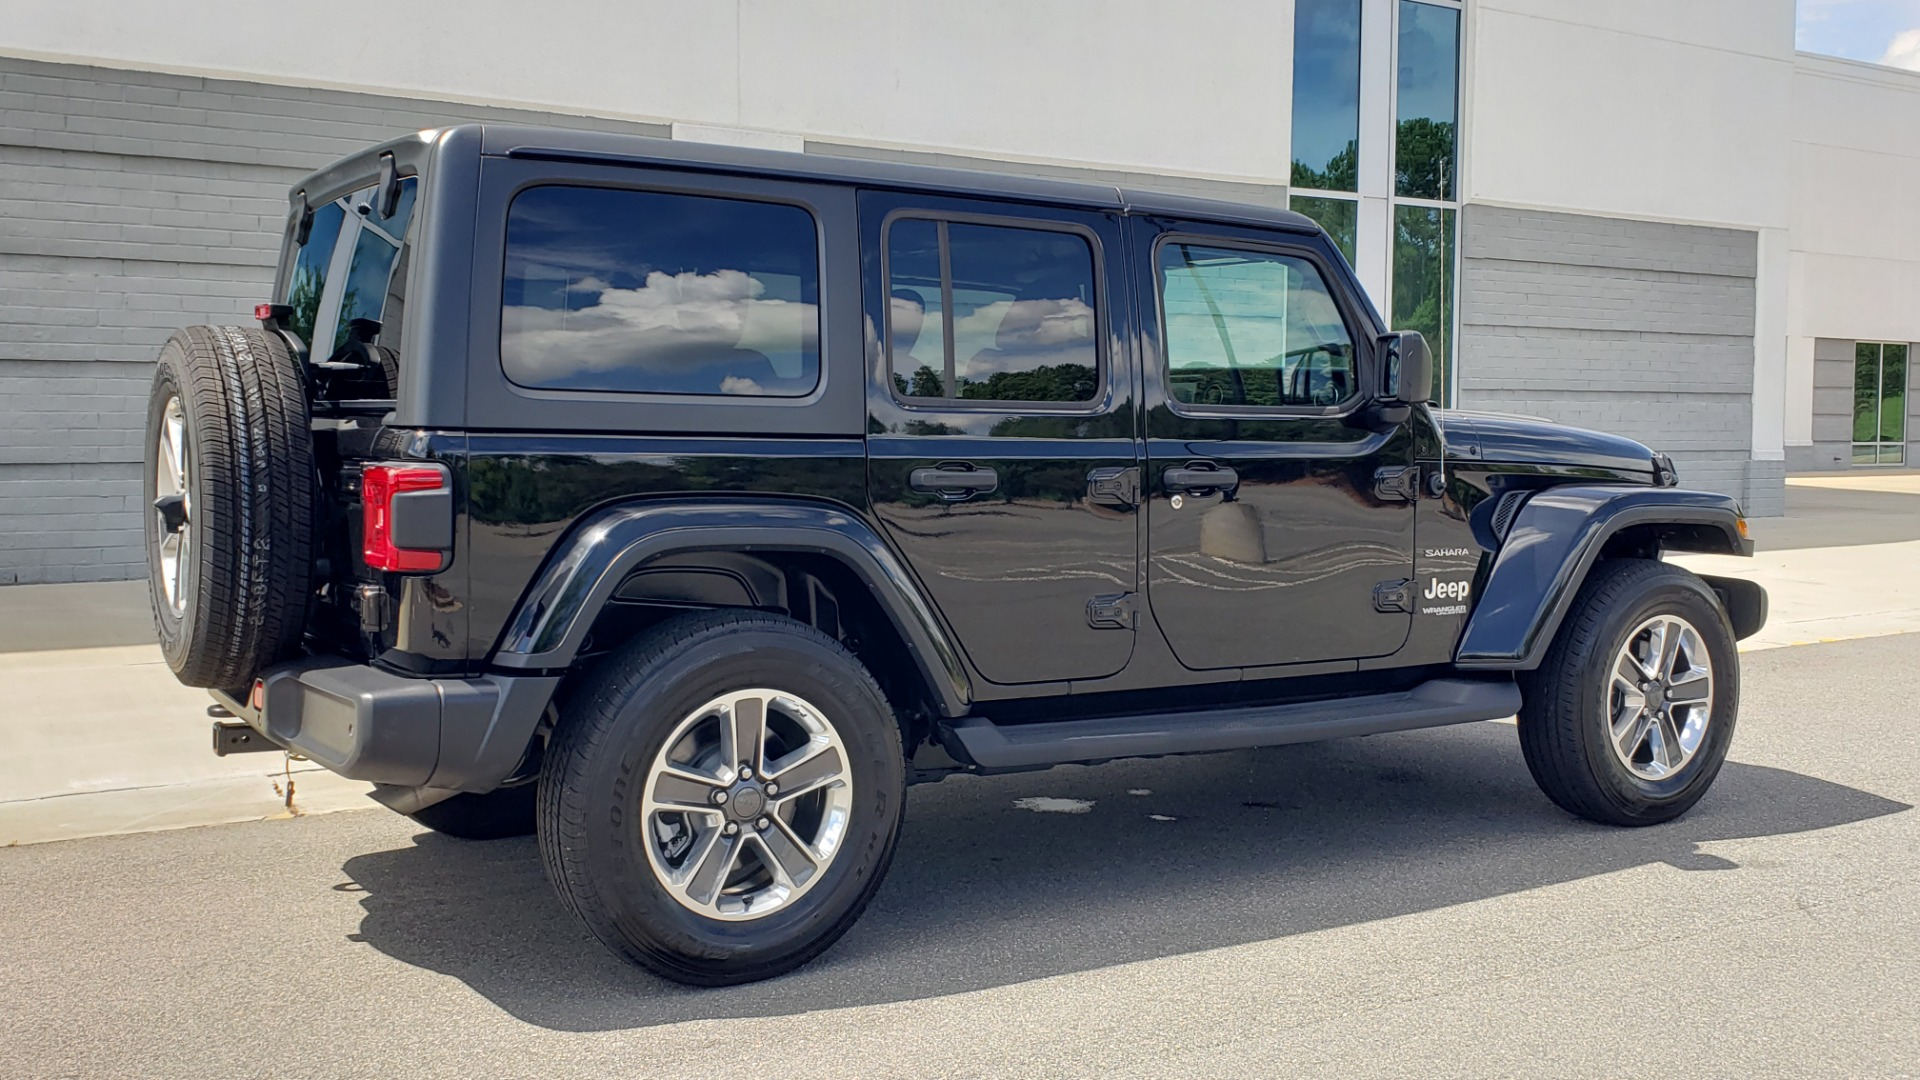 Used 2018 Jeep WRANGLER UNLIMITED SAHARA / 3.6L V6 / 6-SPD MAN / ALPINE / NAV / HTD STS / REARVIEW for sale $43,999 at Formula Imports in Charlotte NC 28227 8